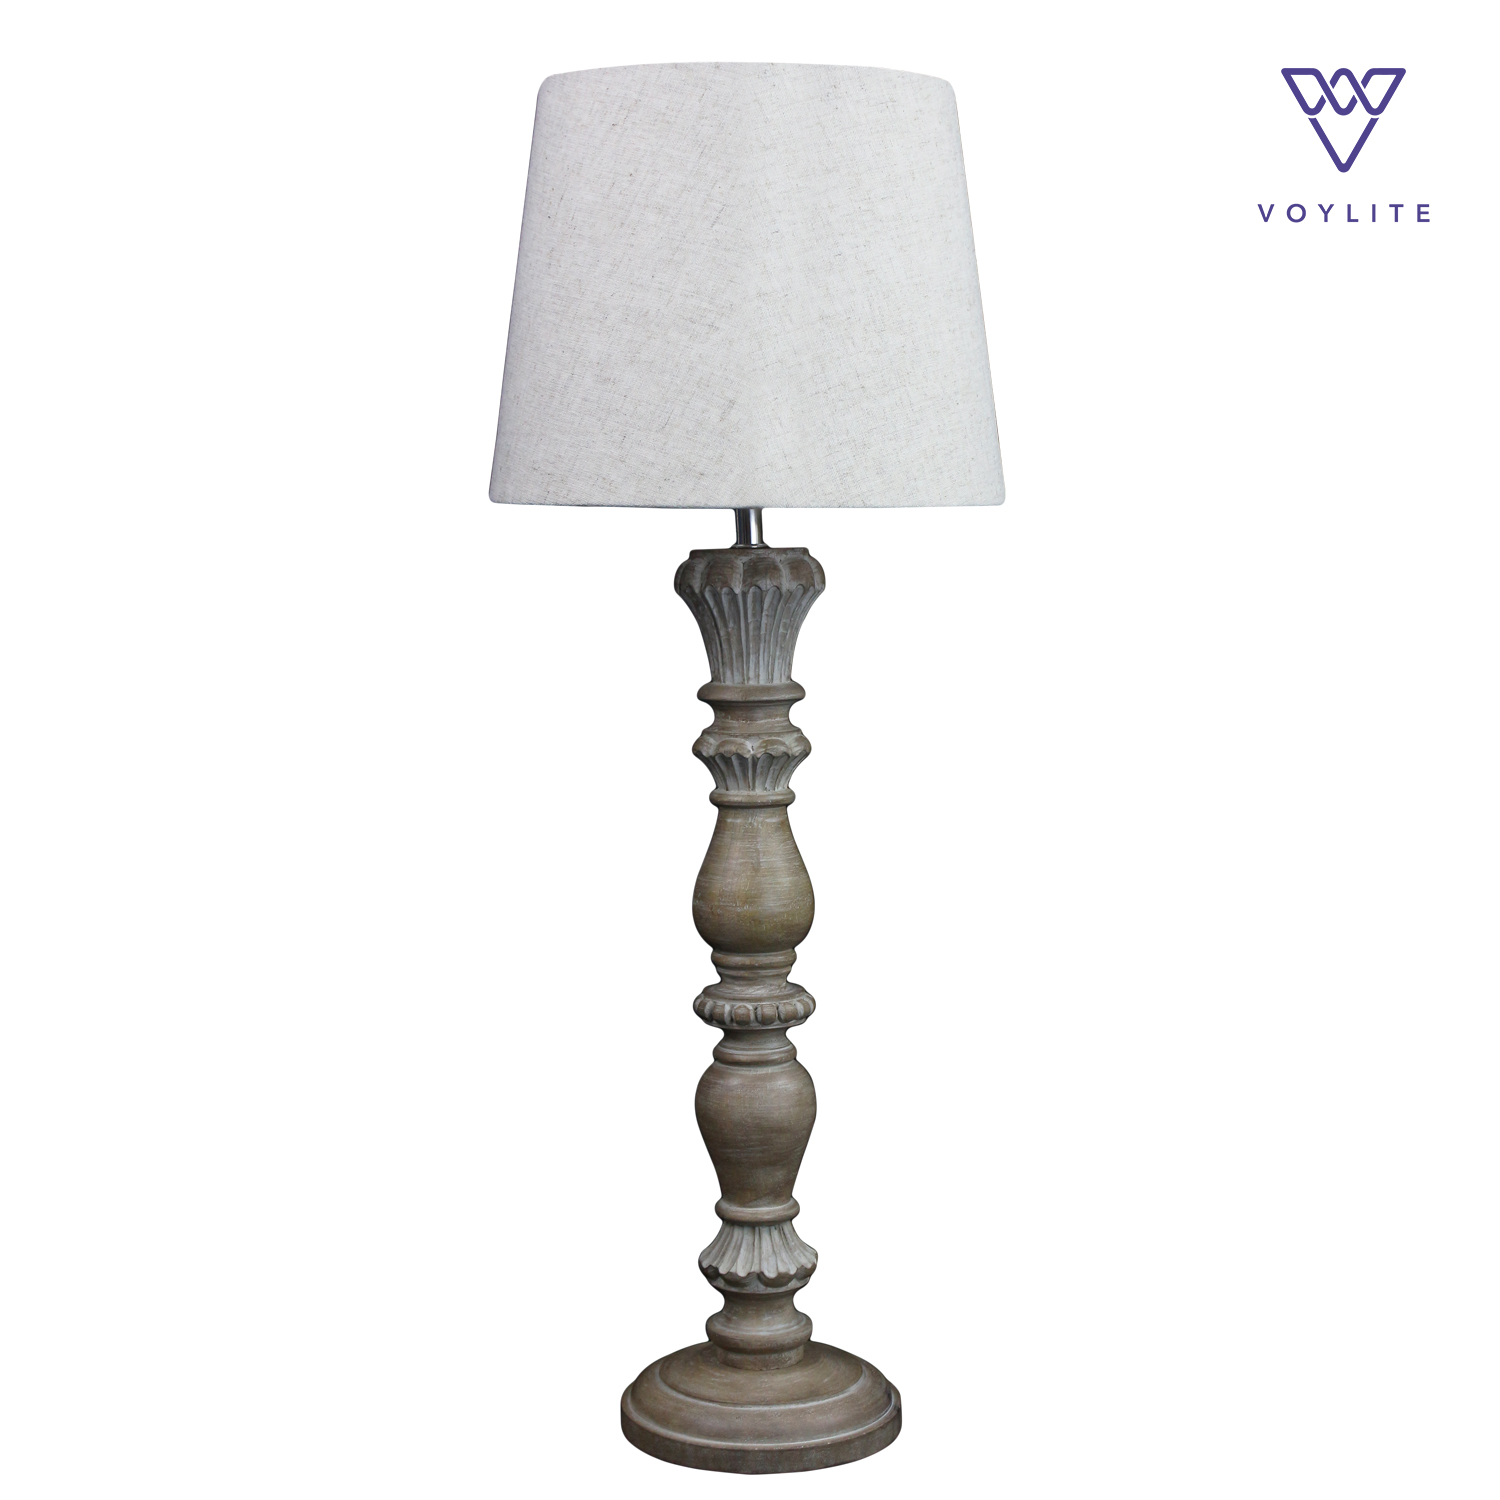 Itace Table Lamp